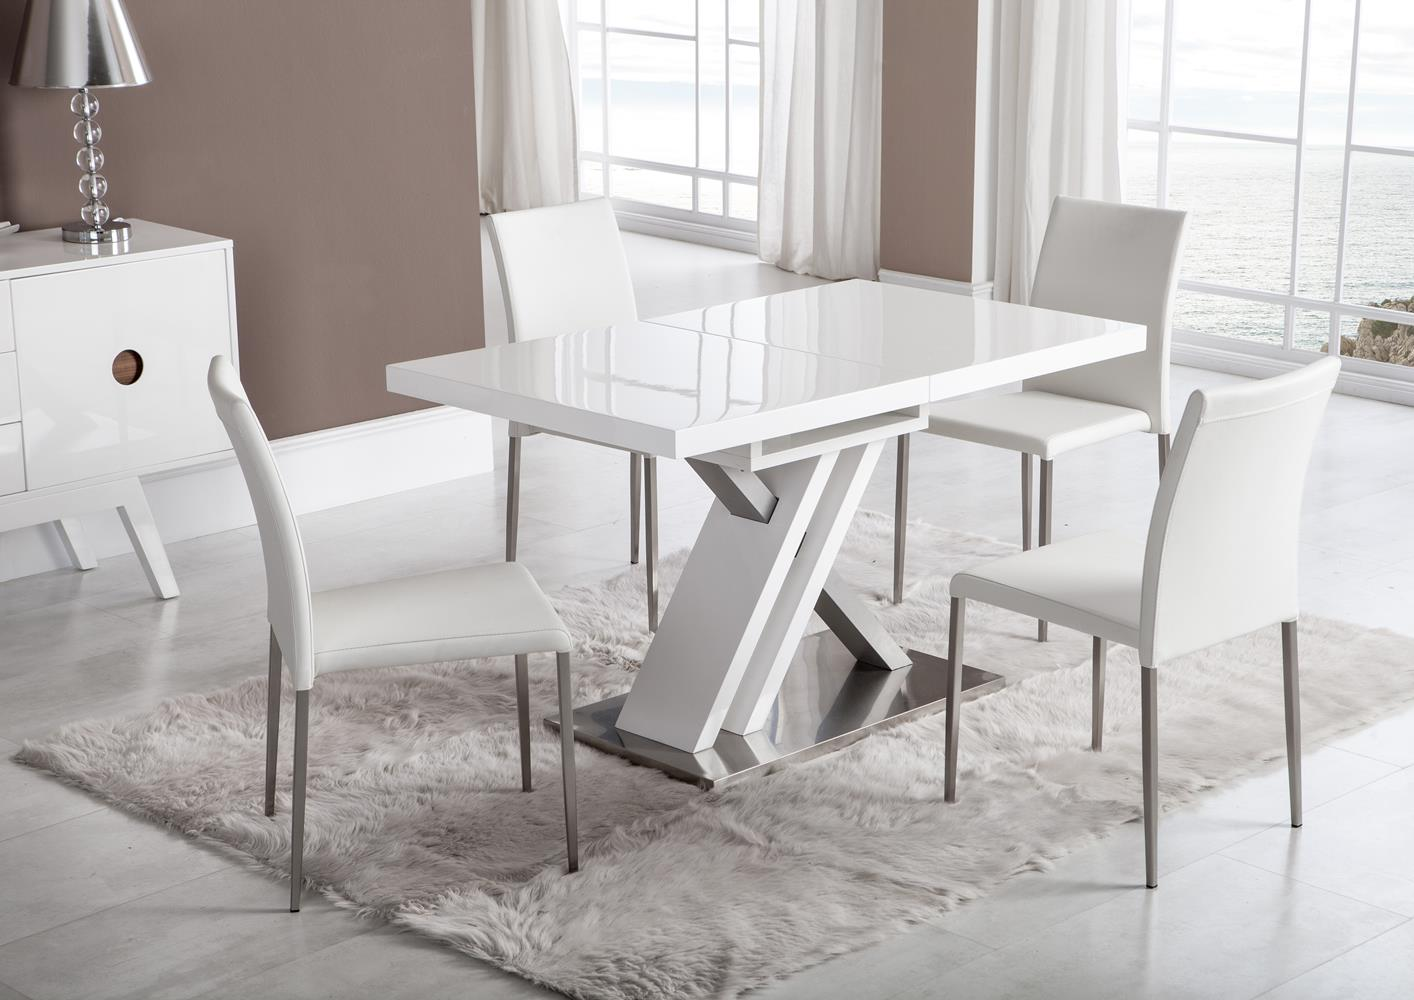 Acheter votre table moderne pied central croix laqu e for Table contemporaine extensible